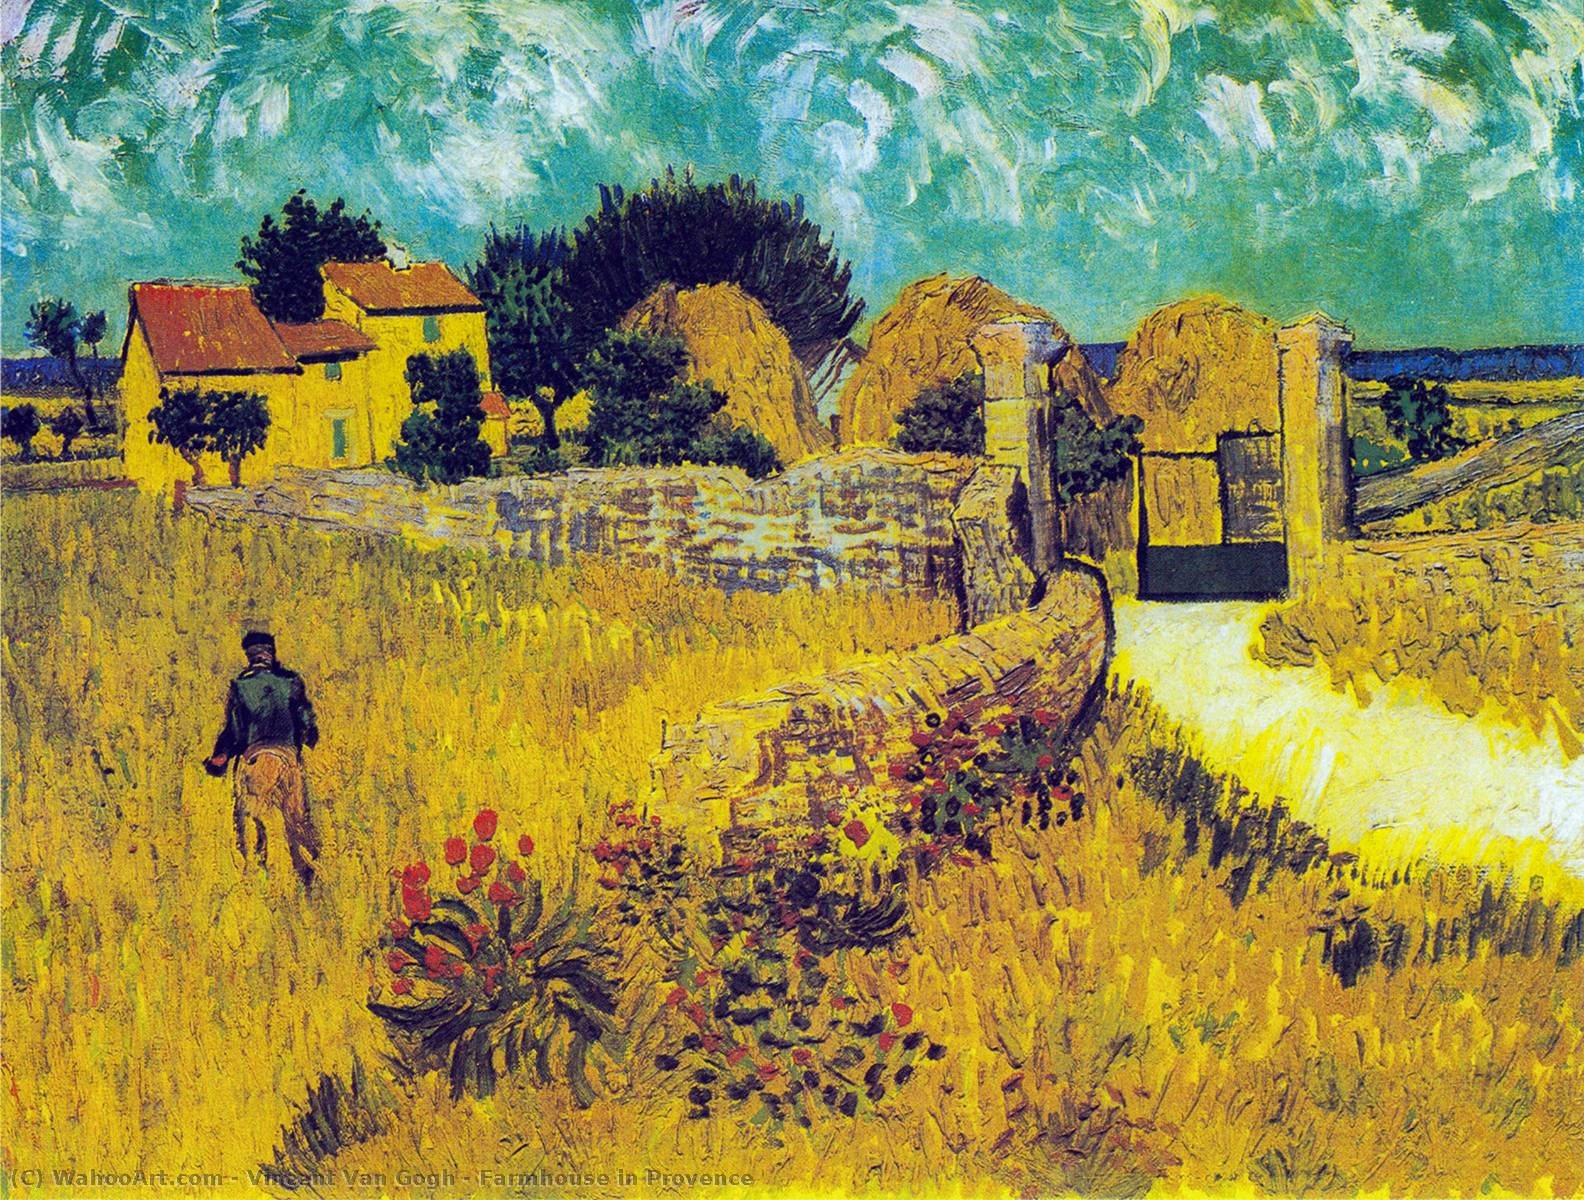 Farmhouse in Provence, 1888 by Vincent Van Gogh (1853-1890, Netherlands) | Art Reproductions Vincent Van Gogh | WahooArt.com